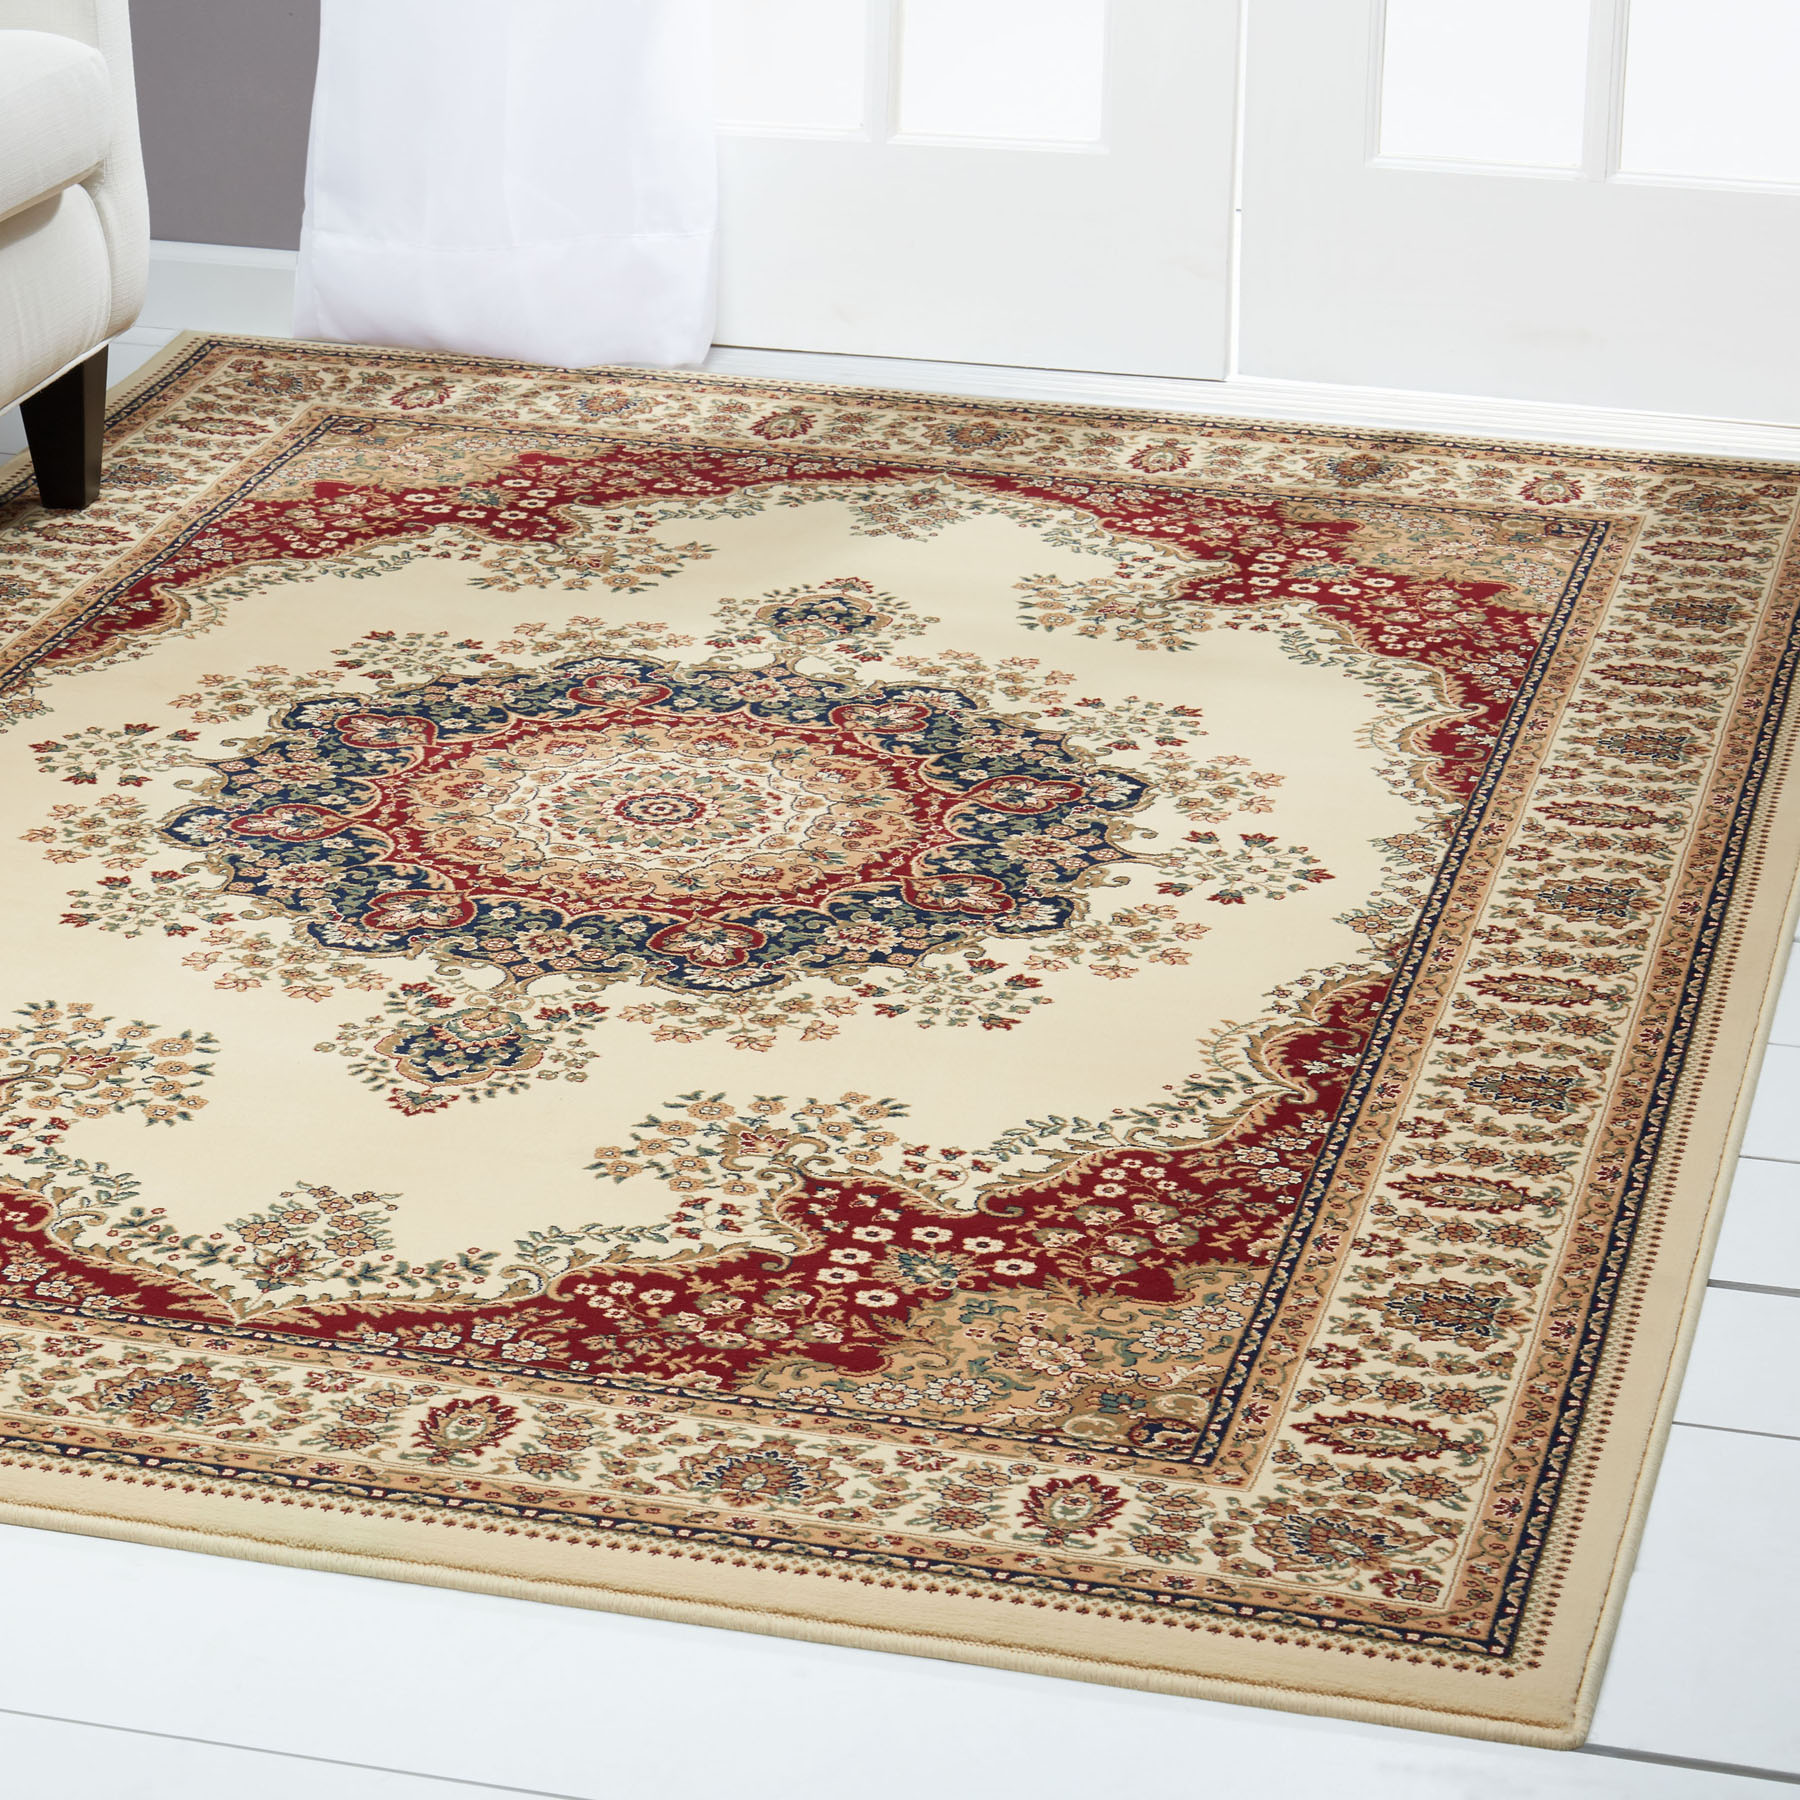 Free S H Ivory Persian Area Rug 2 X 4 Oriental Carpet 9 Actual 1